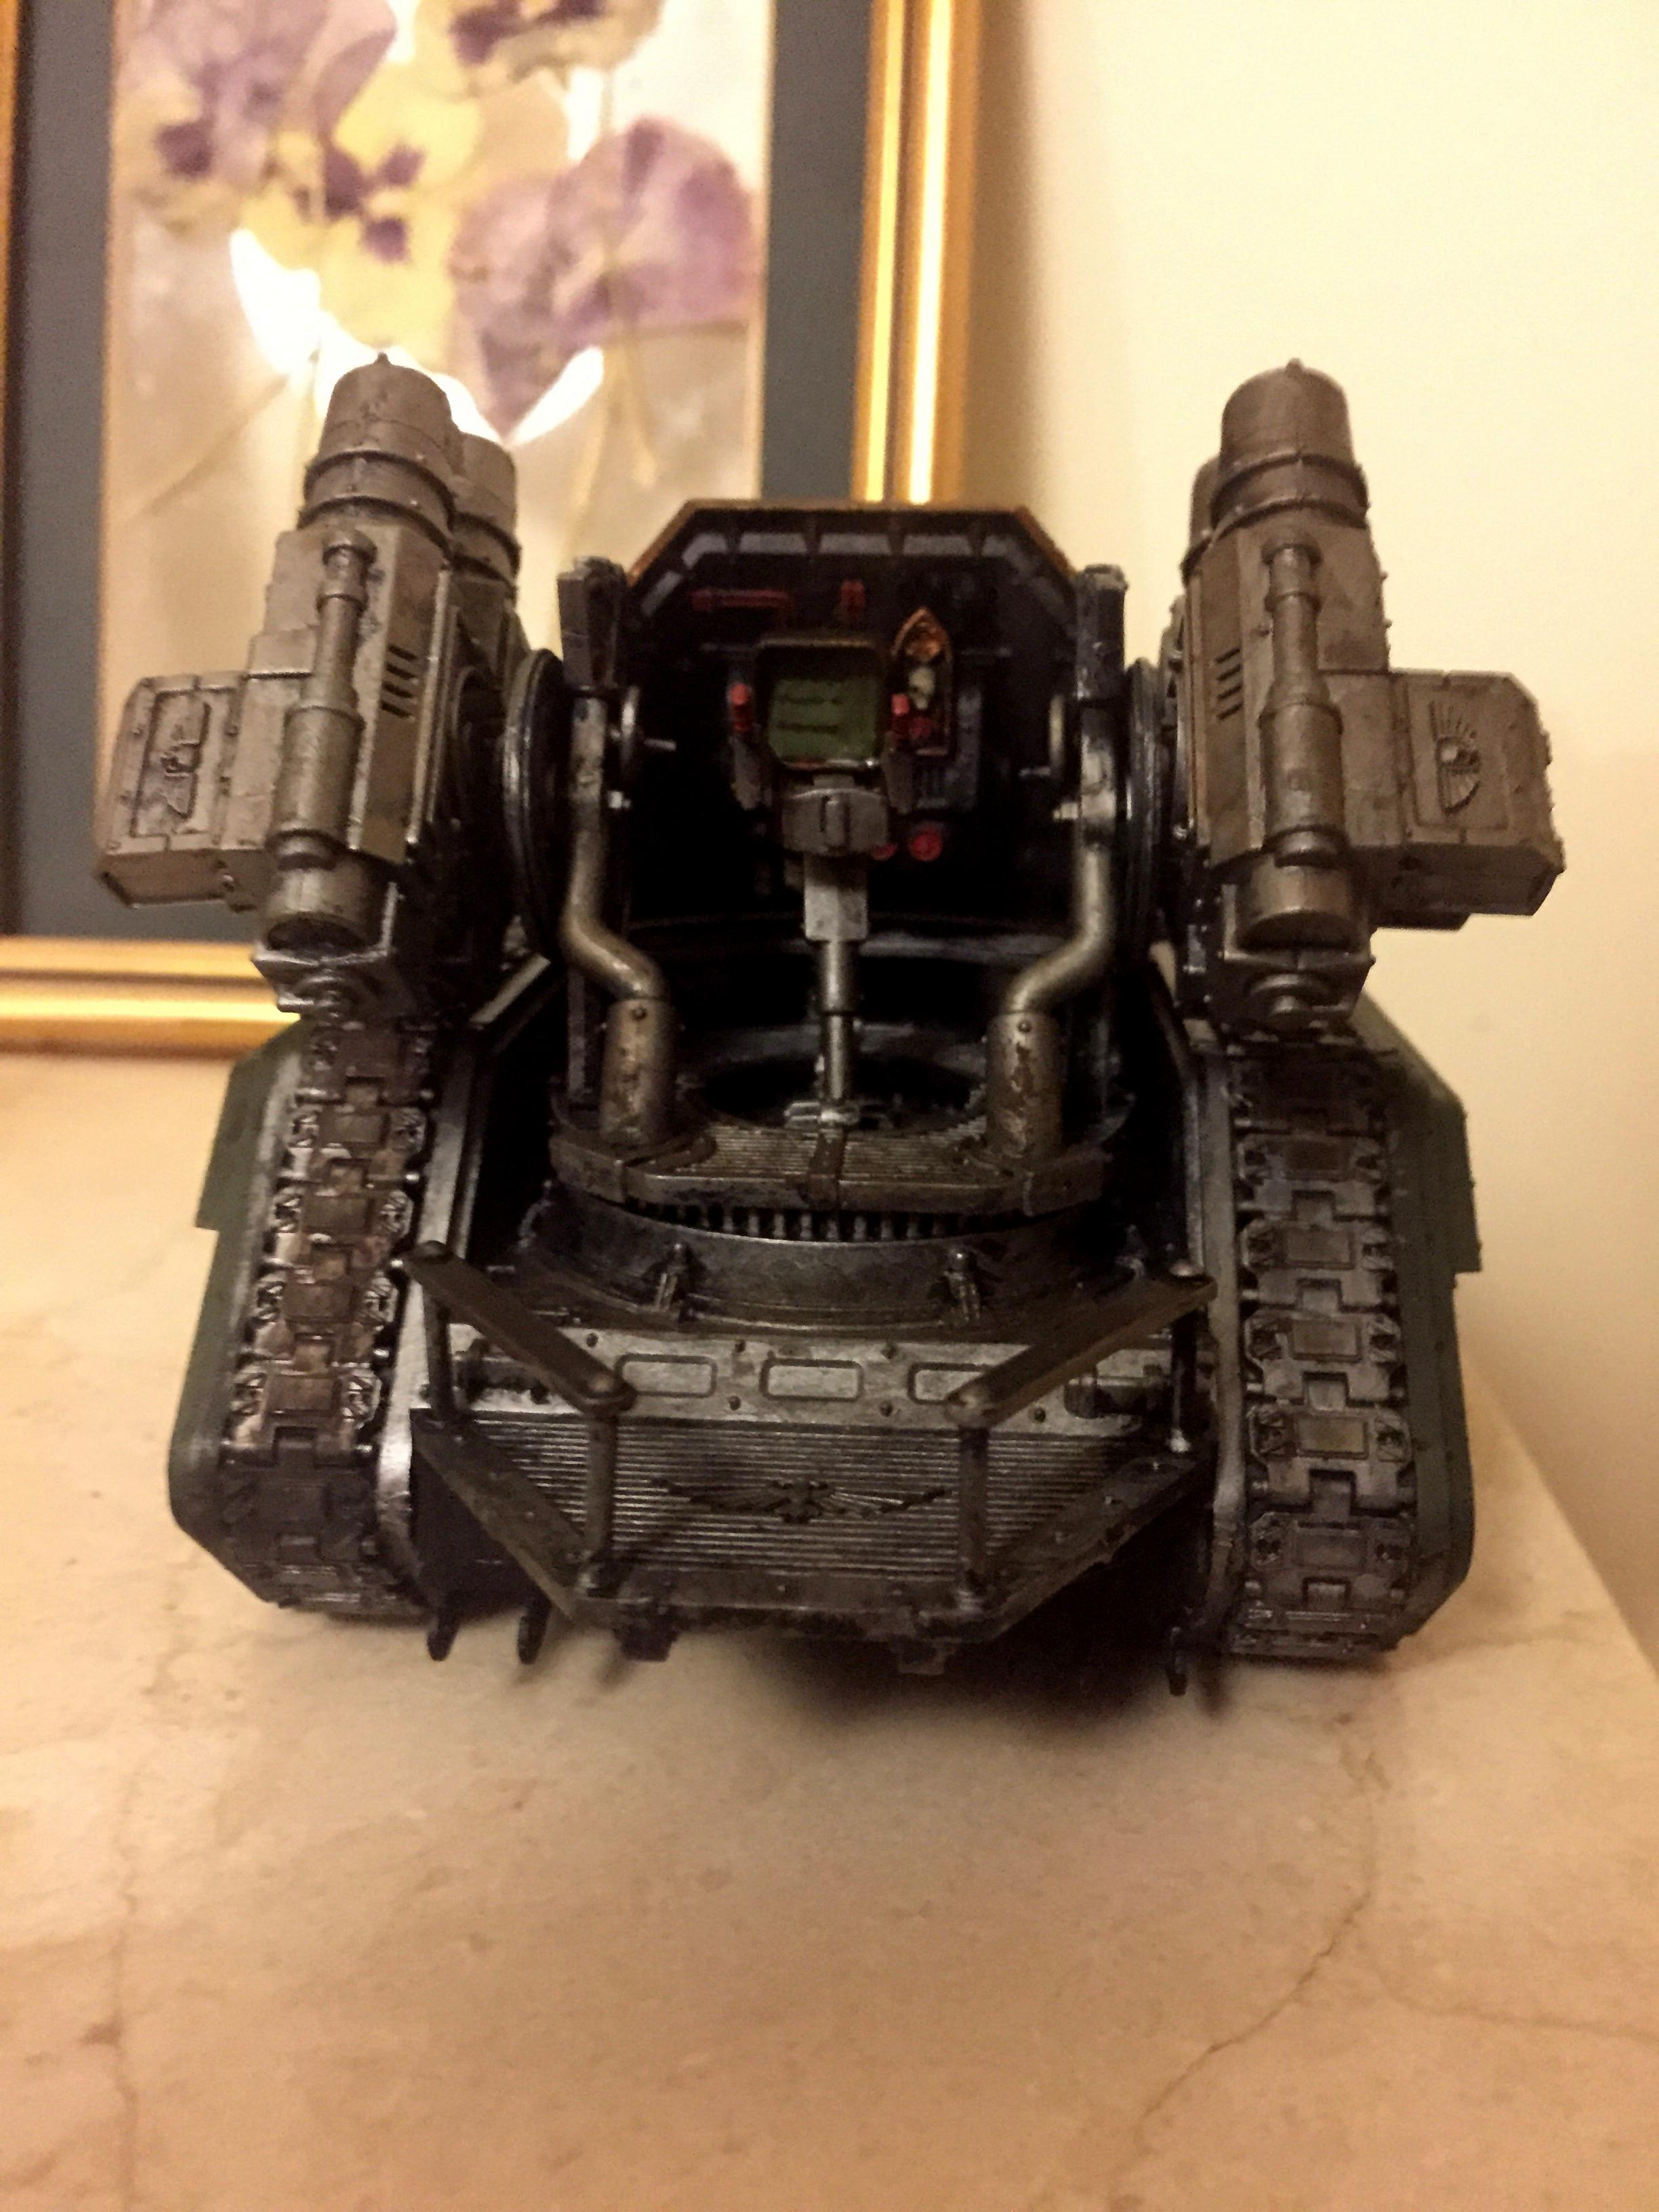 Chinese, Computer, Controls, Tank, Weathered, Wyvern